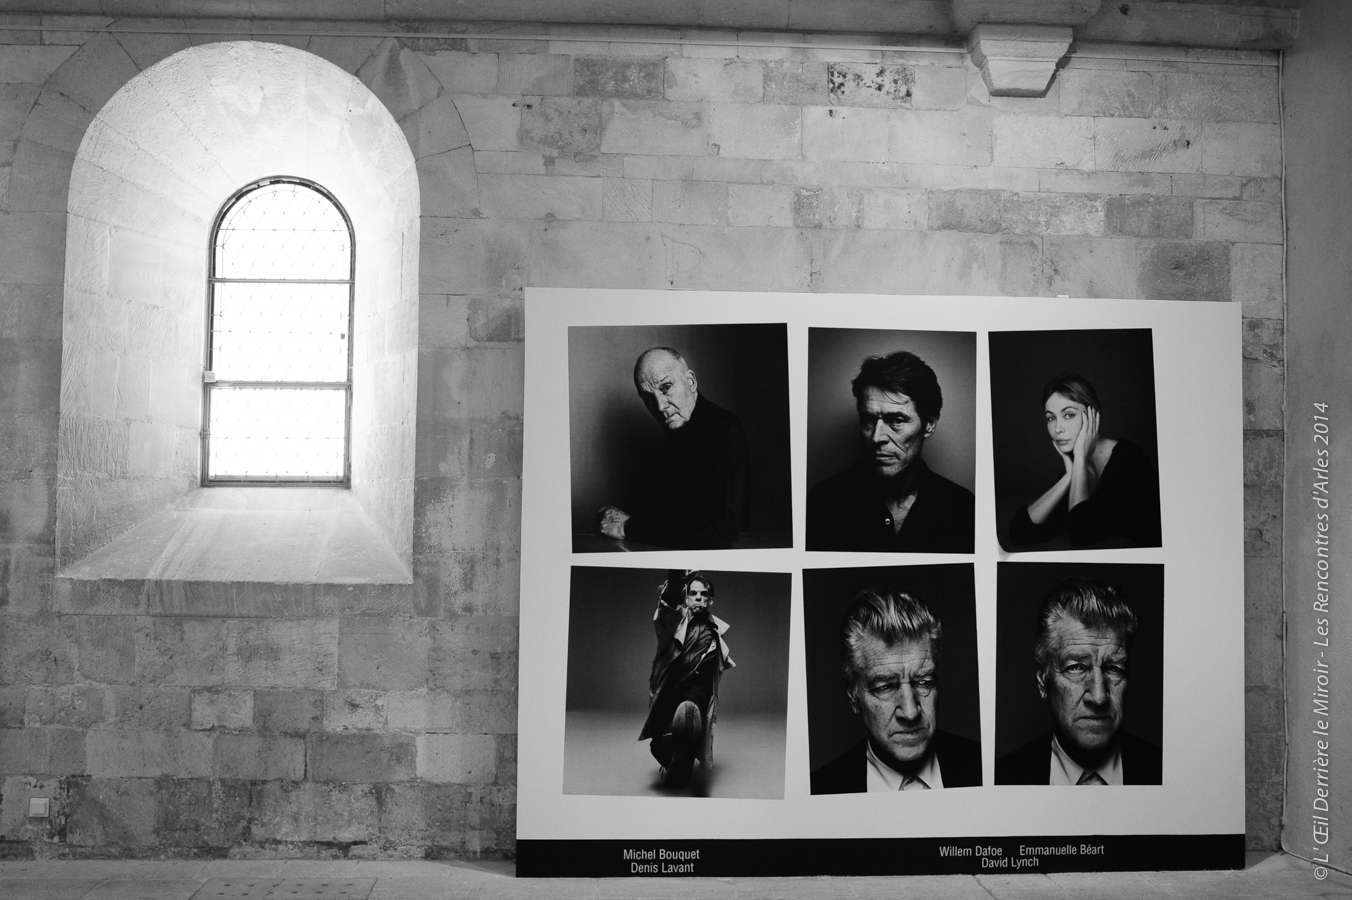 Rencontres photographie arles 2014